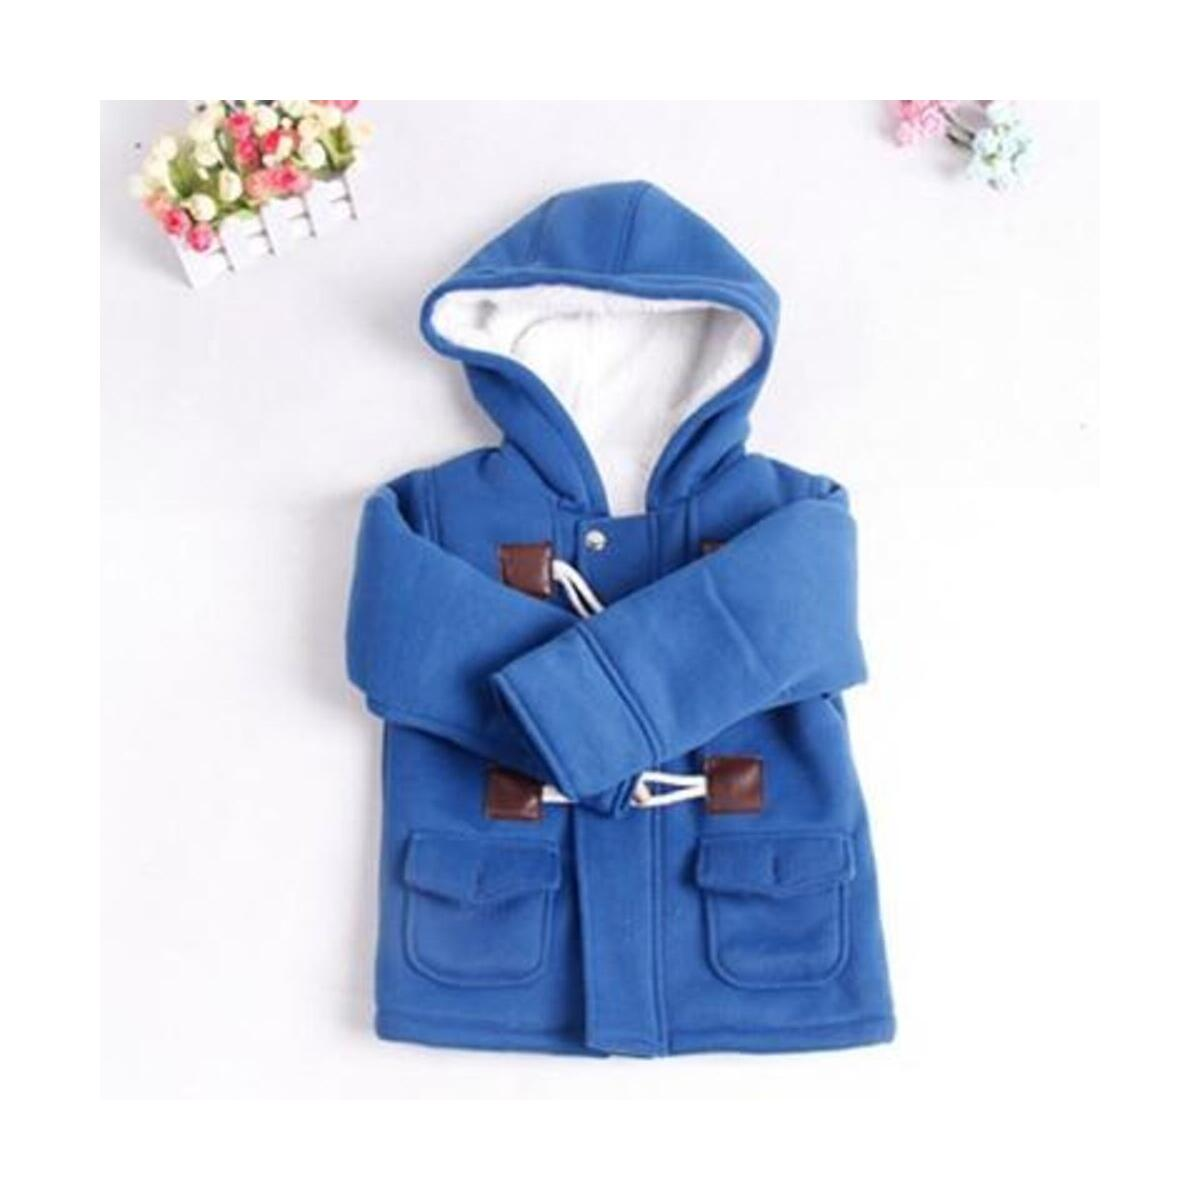 Baby Boys Jacket Winter Clothes Outerwear Coat Kids